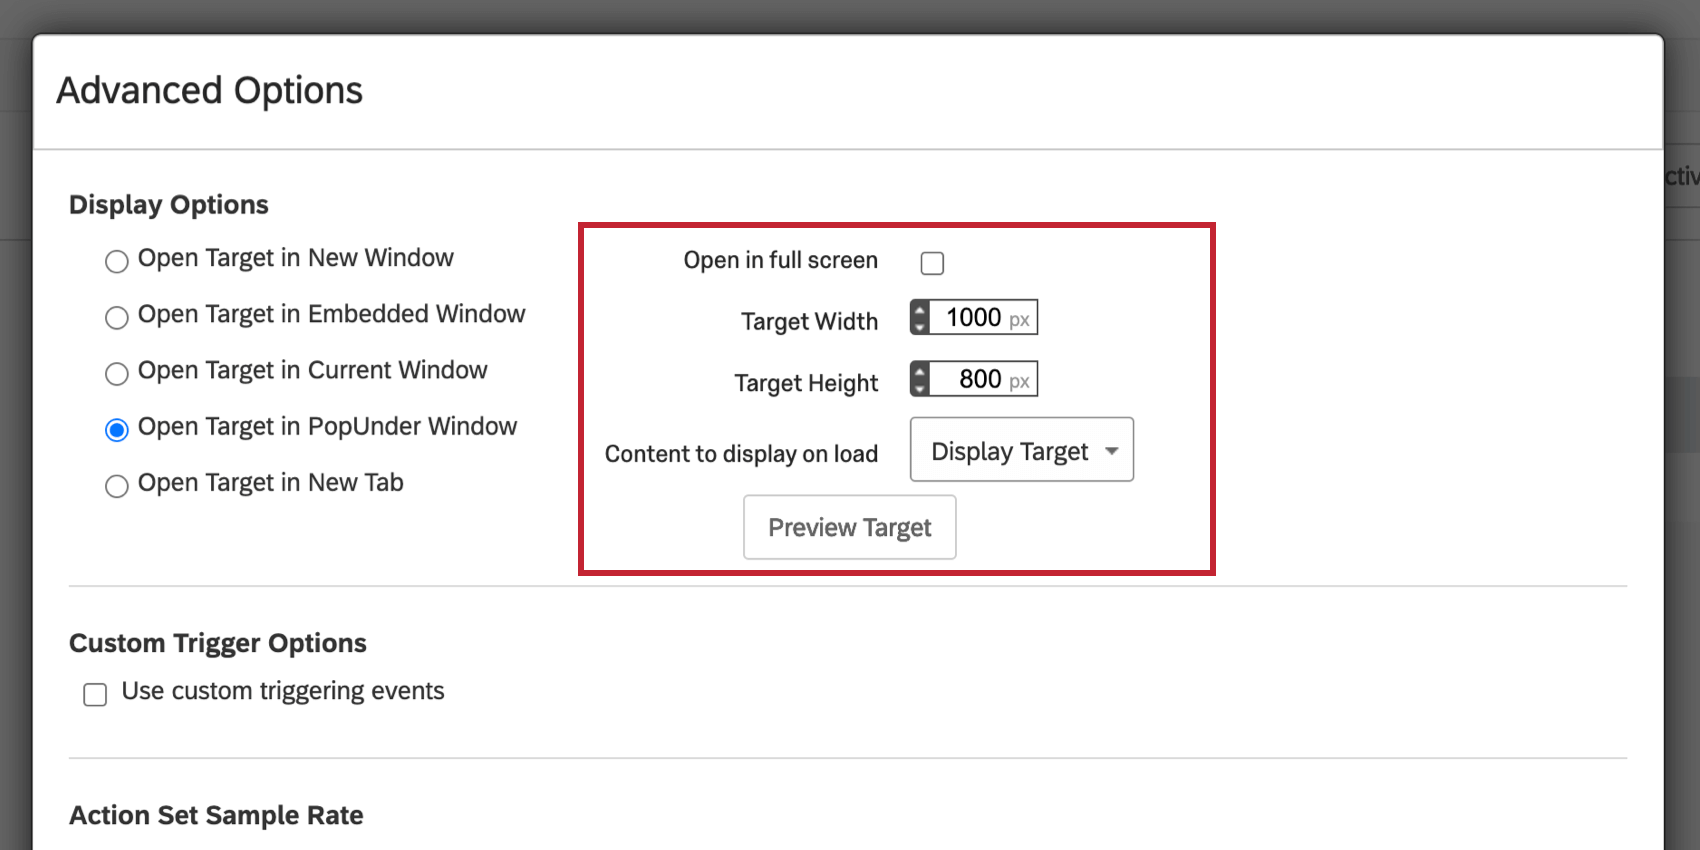 image of the Open Target in PopUnder Window selection for display options. The additional target options are now available.